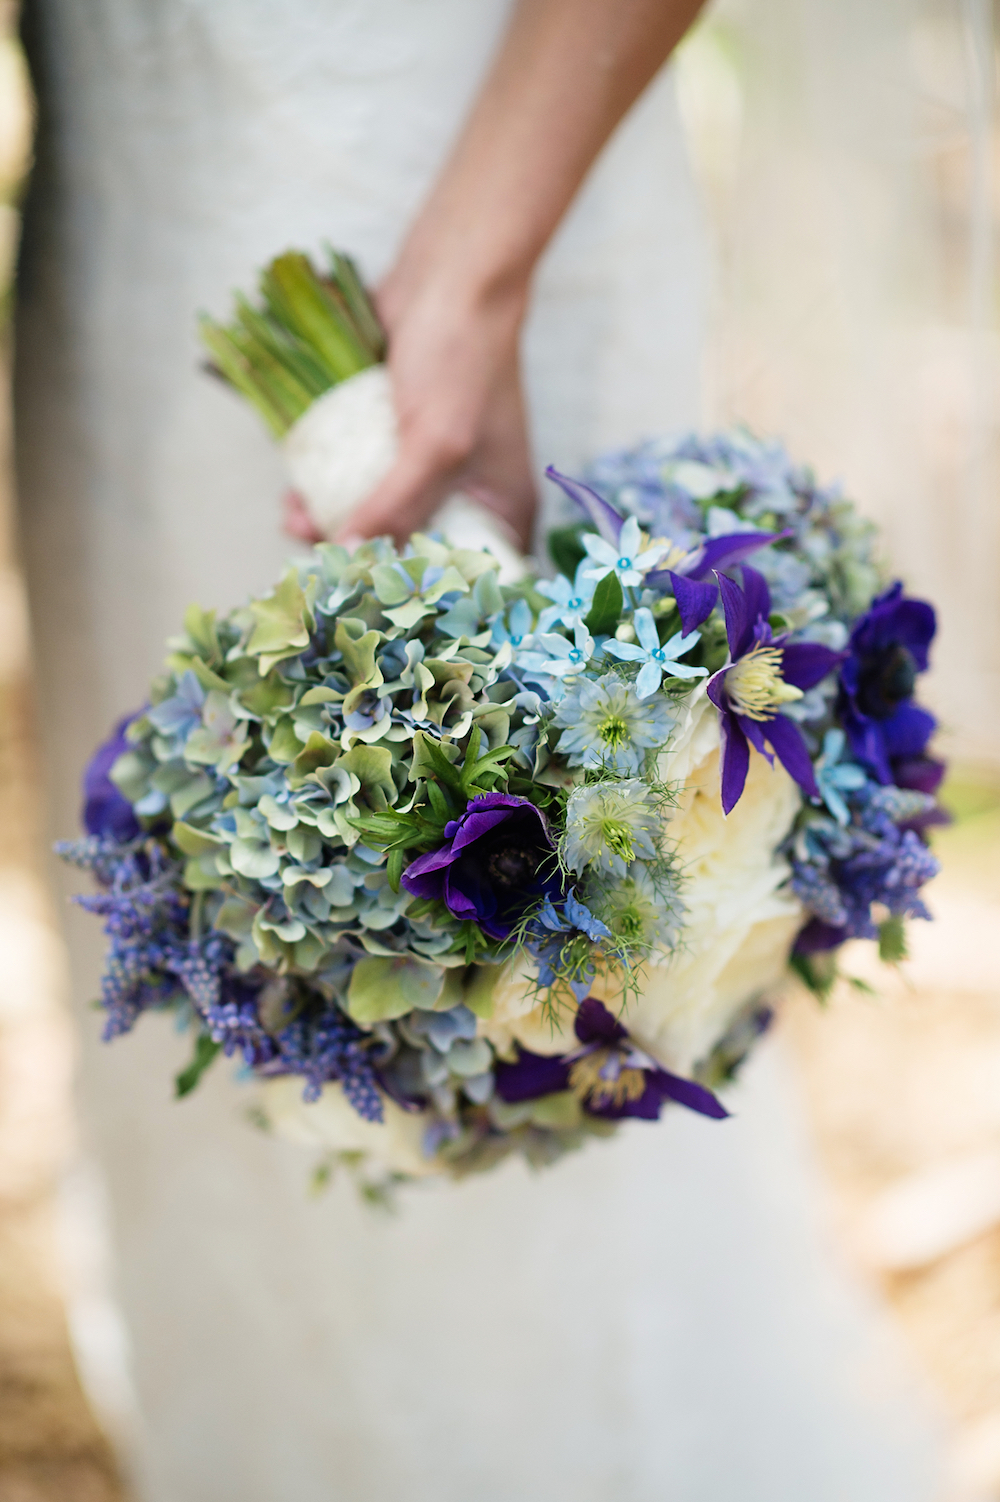 Bride in wedding dress with almost all blue wedding bouquet